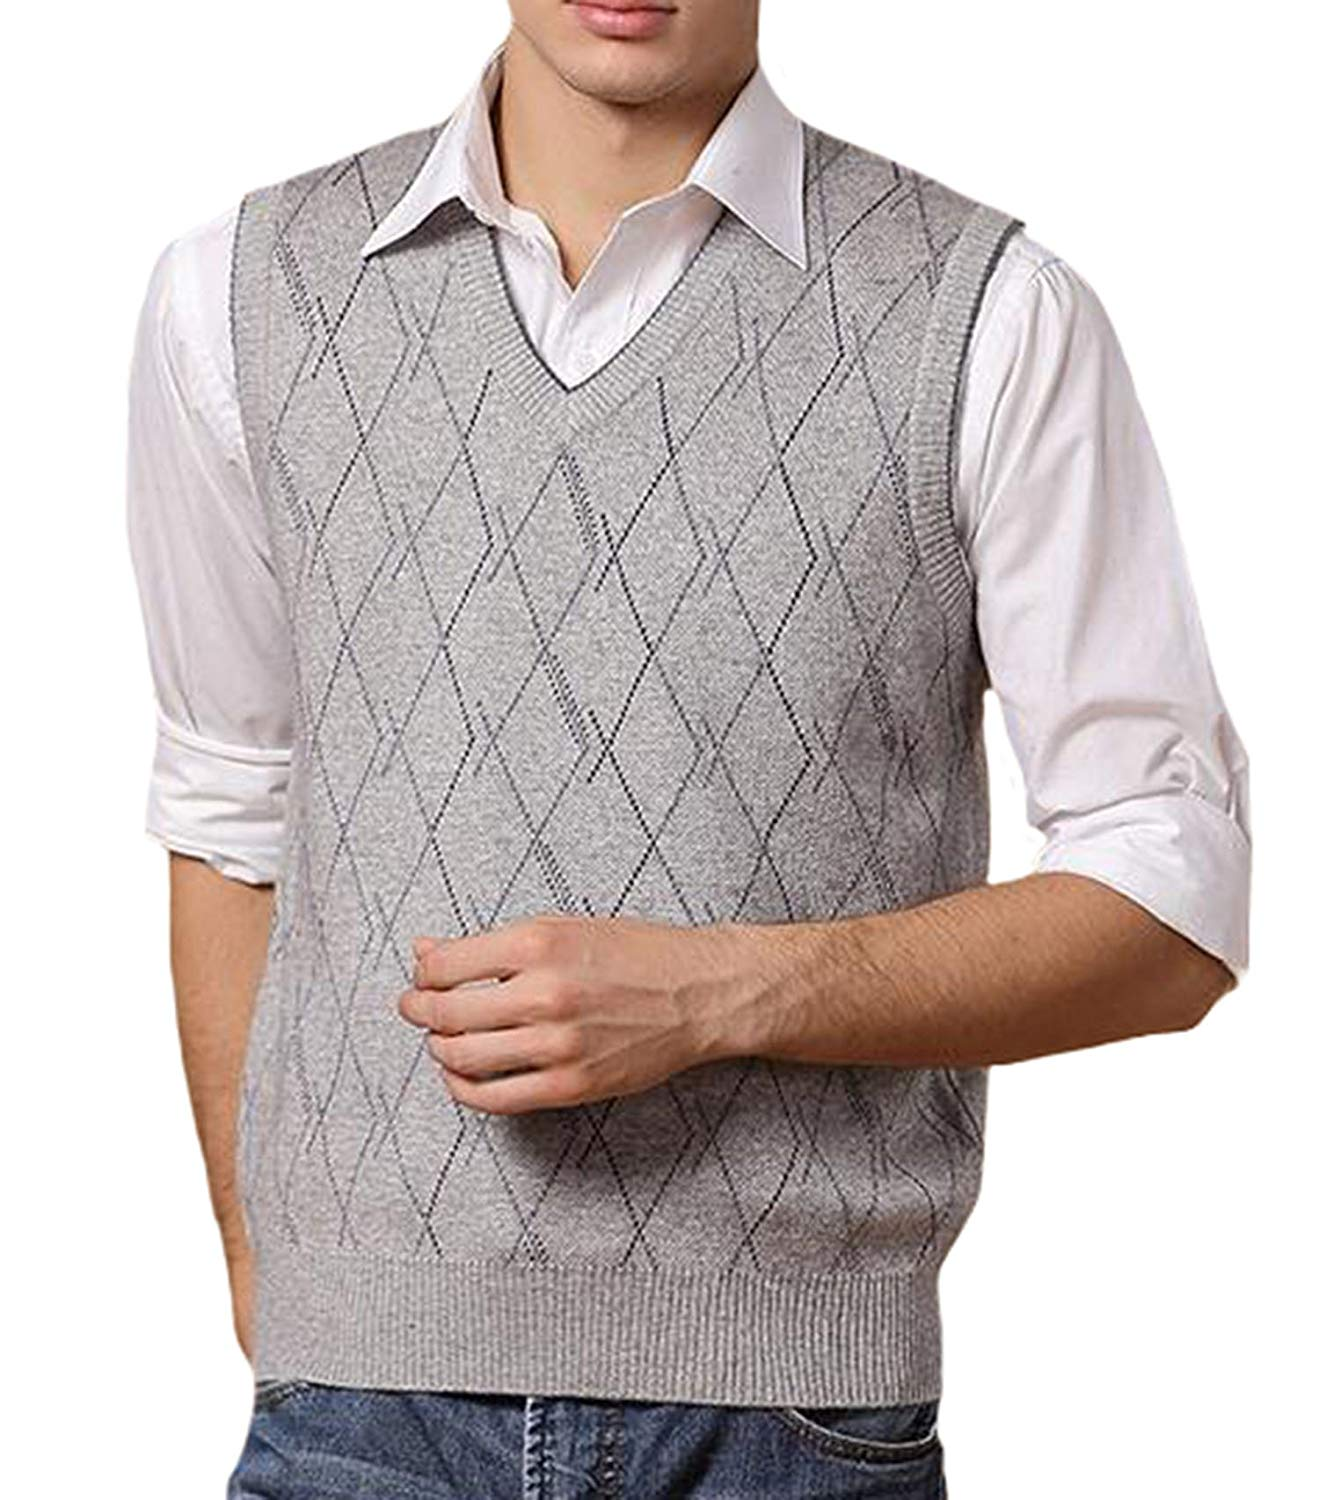 d04eb32ea0cb0c UP Men s Casual Slim Fit Vest Knit V Neck Argyle Pattern Wool Sweater Vest